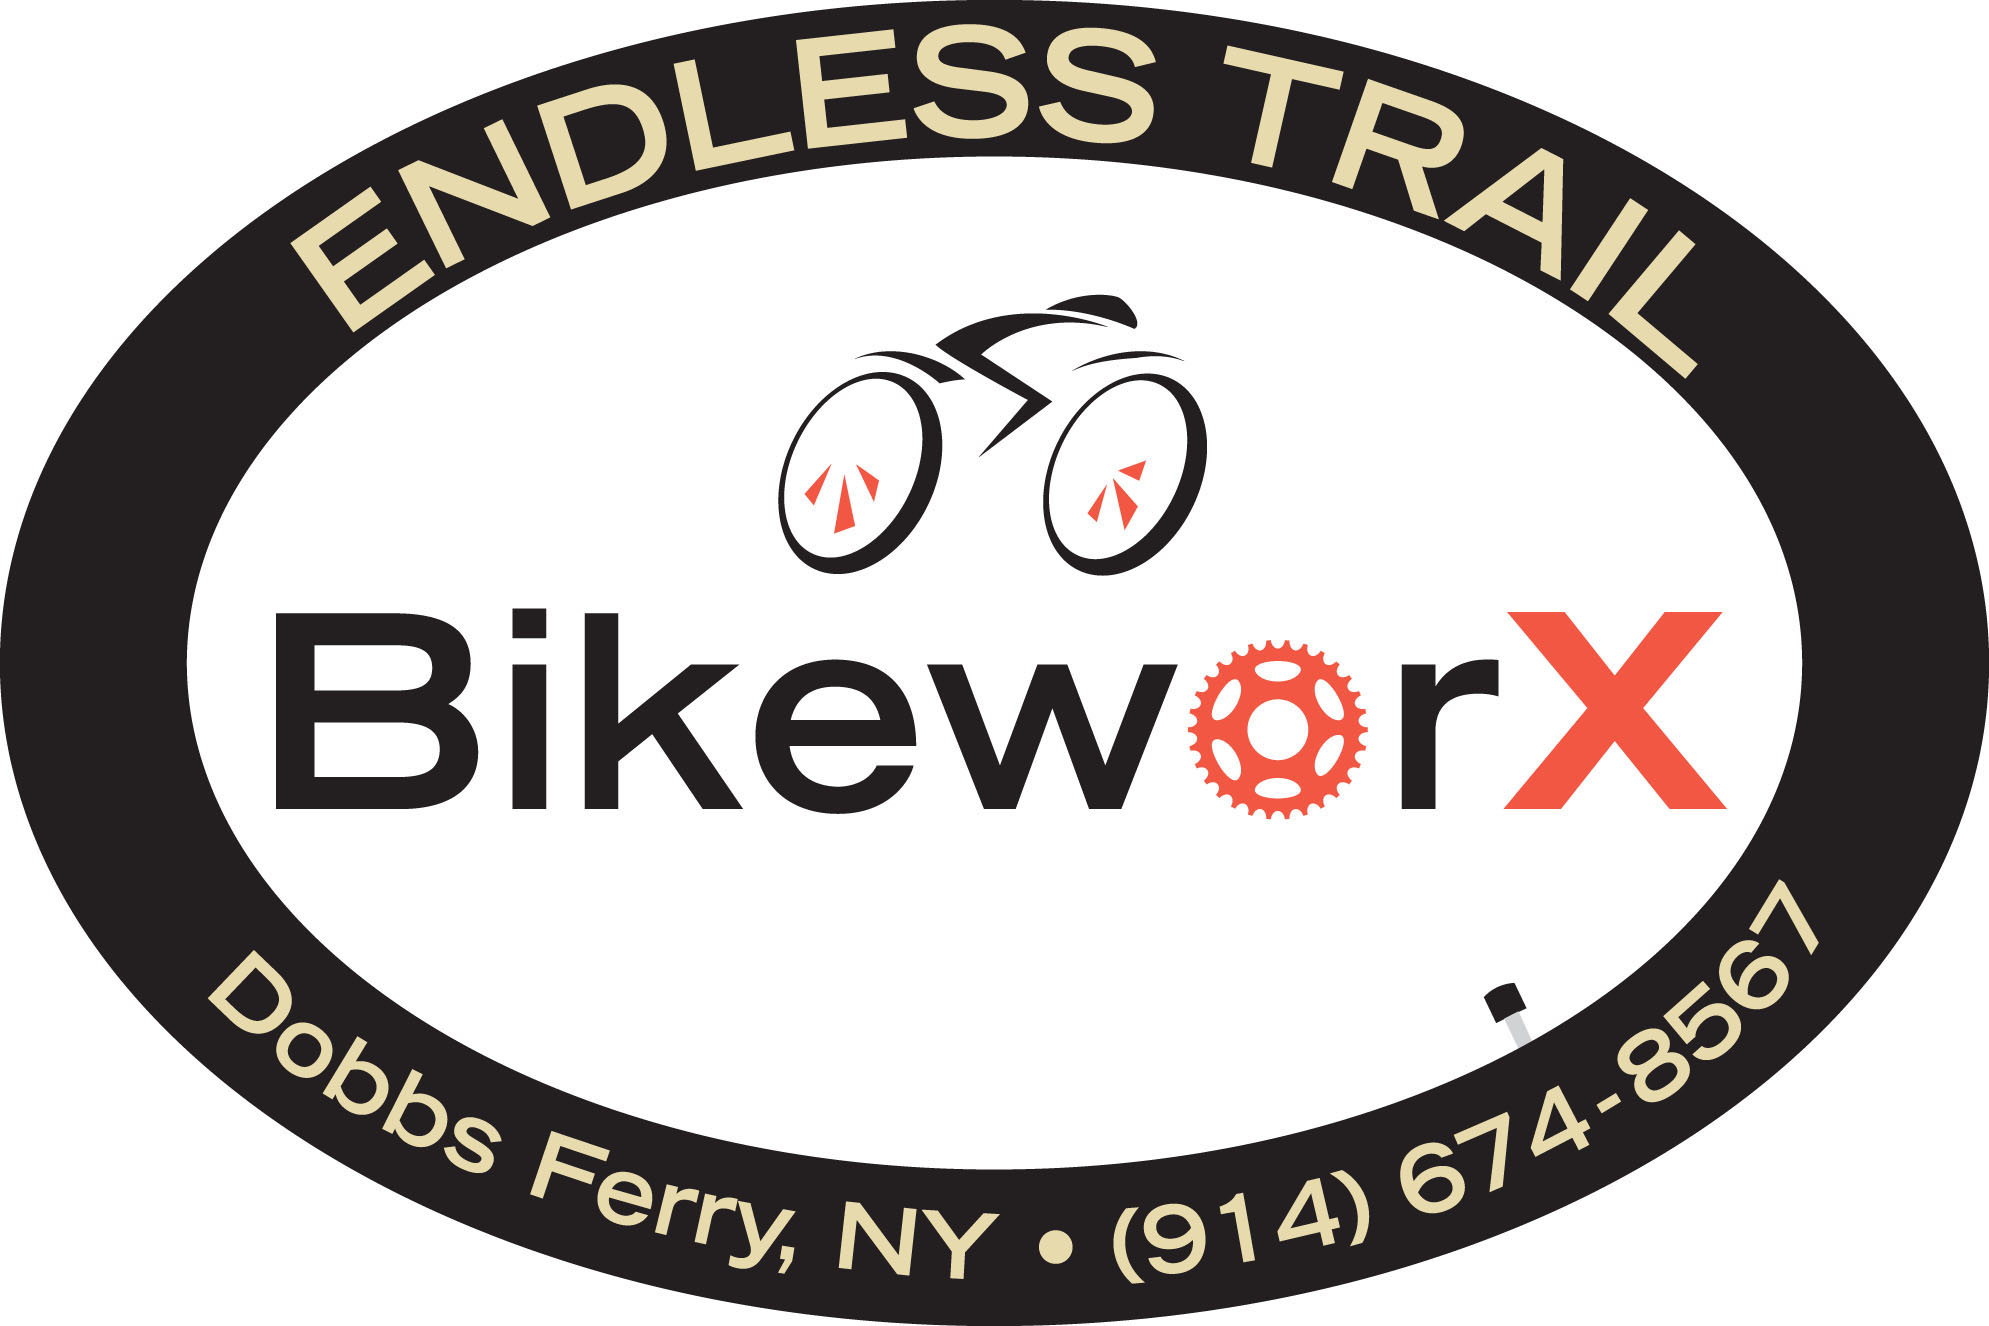 Endless Trail Bikeworkx Dobbs Ferry NY